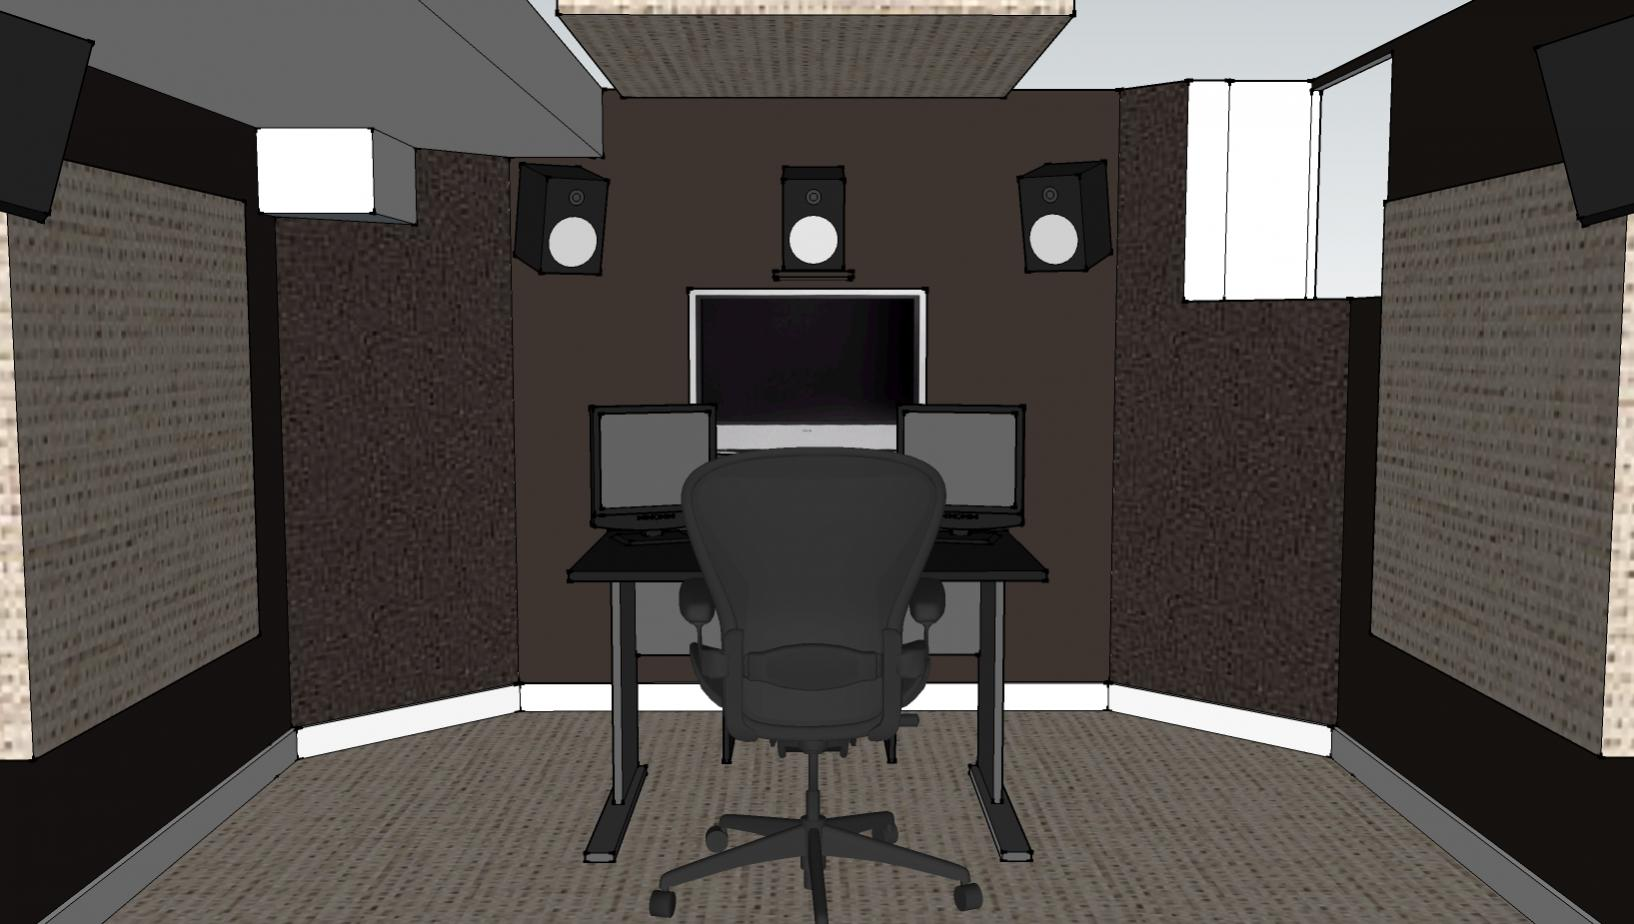 Small Sound Design Room Opinions Please